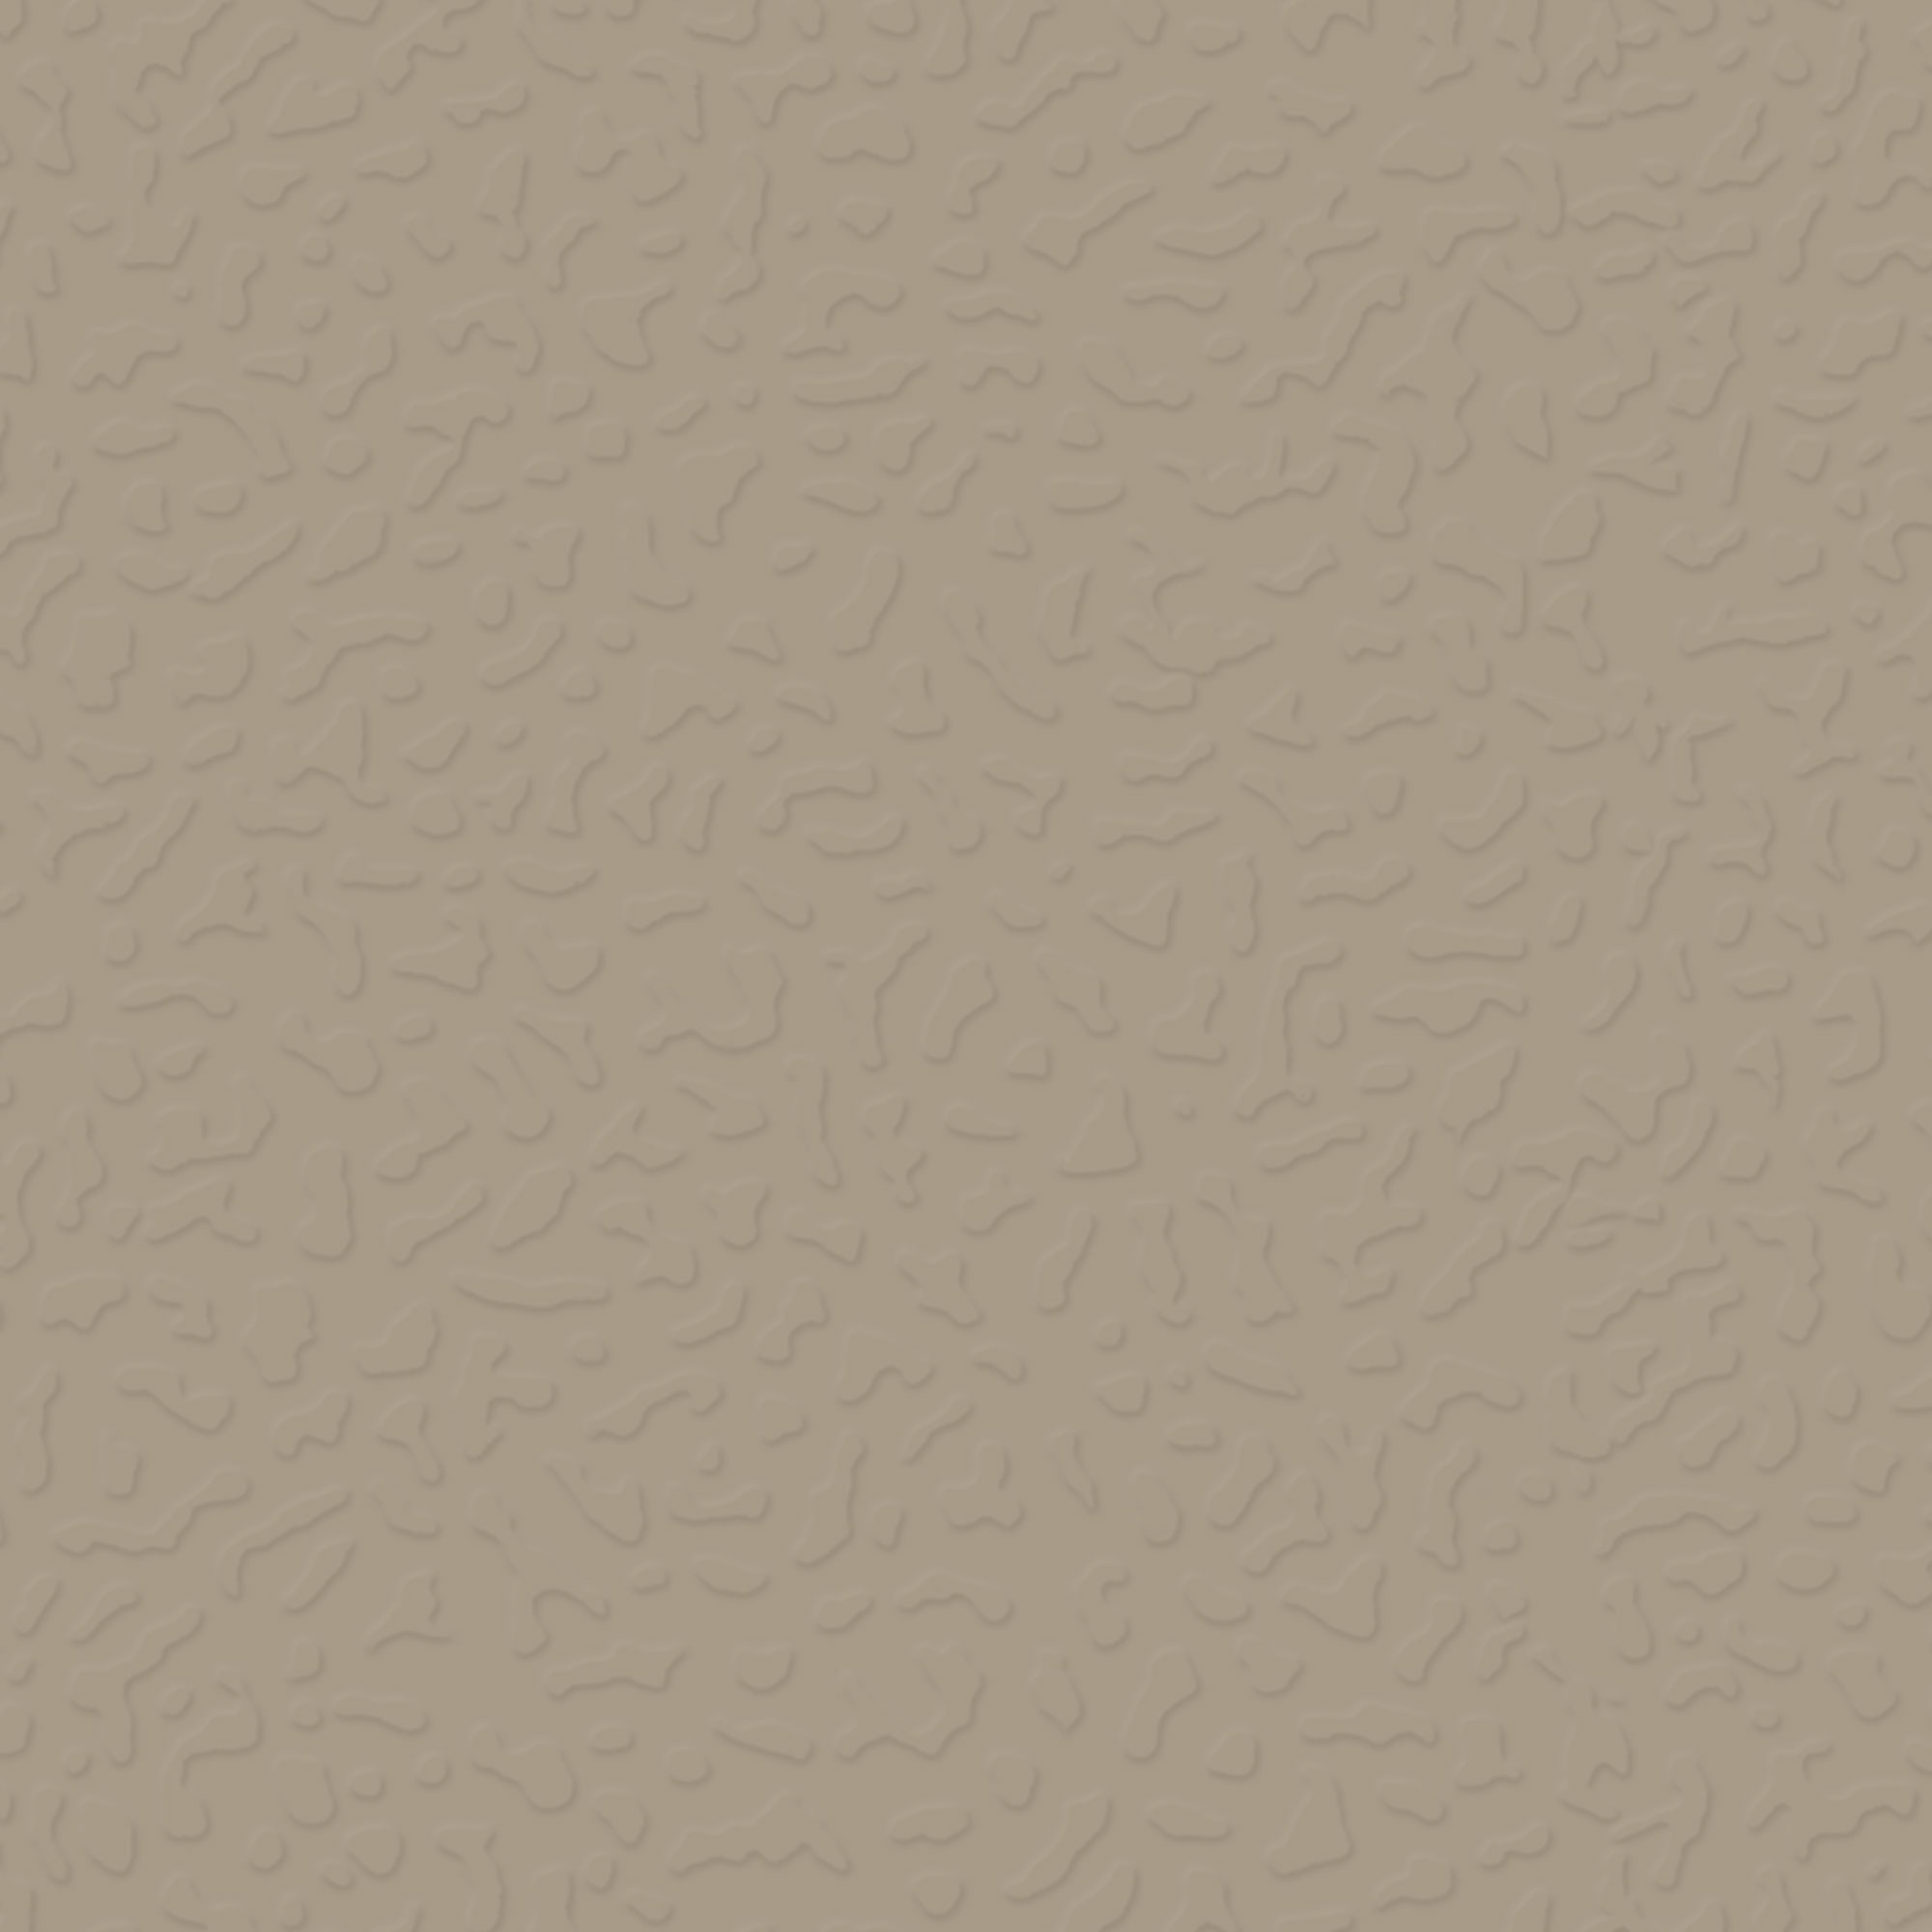 Roppe Rubber Tile 900 - Textured Design (993) Flax LB996632